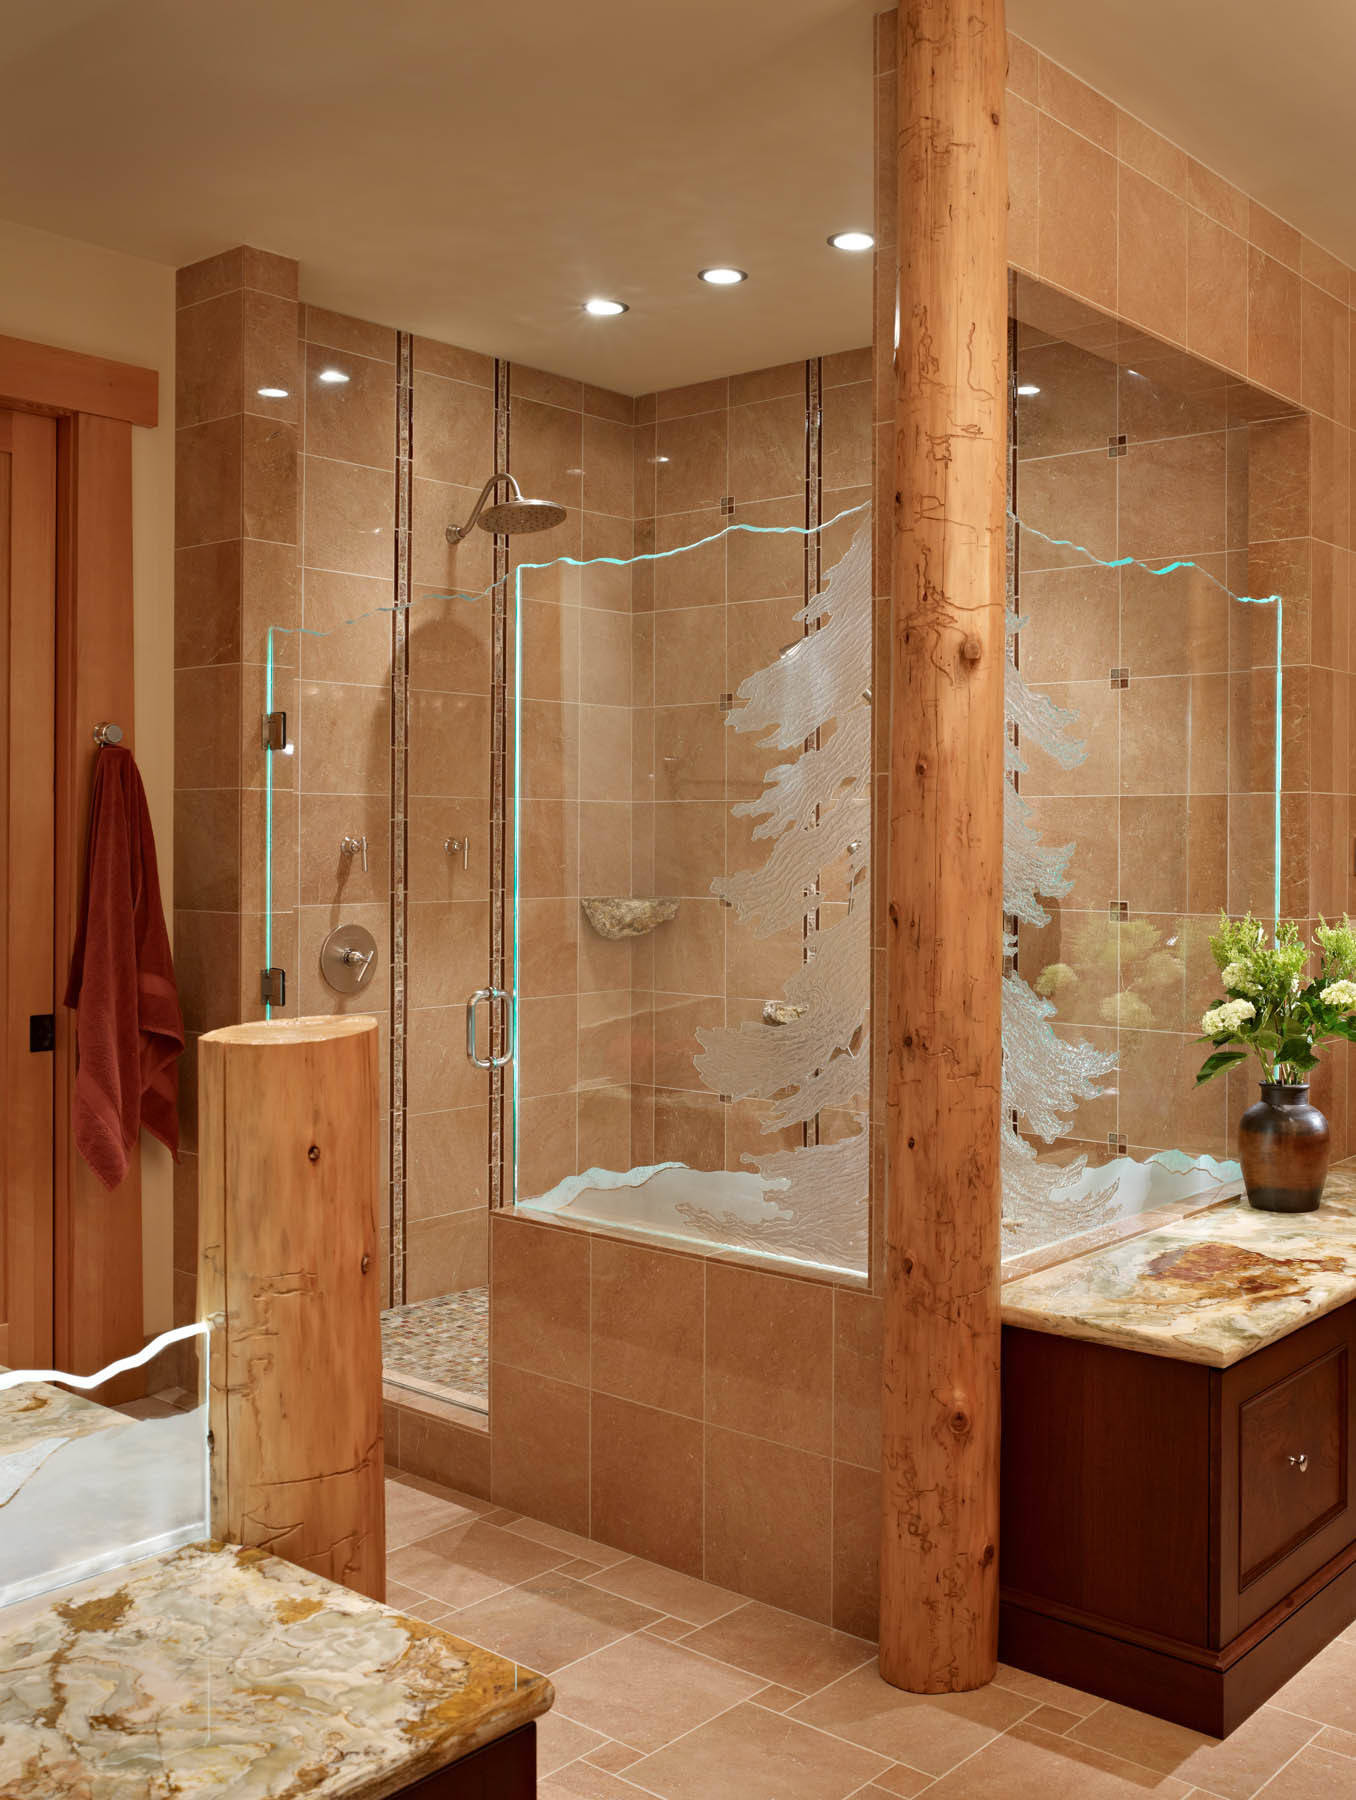 Bathroom Designs That'll Make It Your Favourite Place (11)